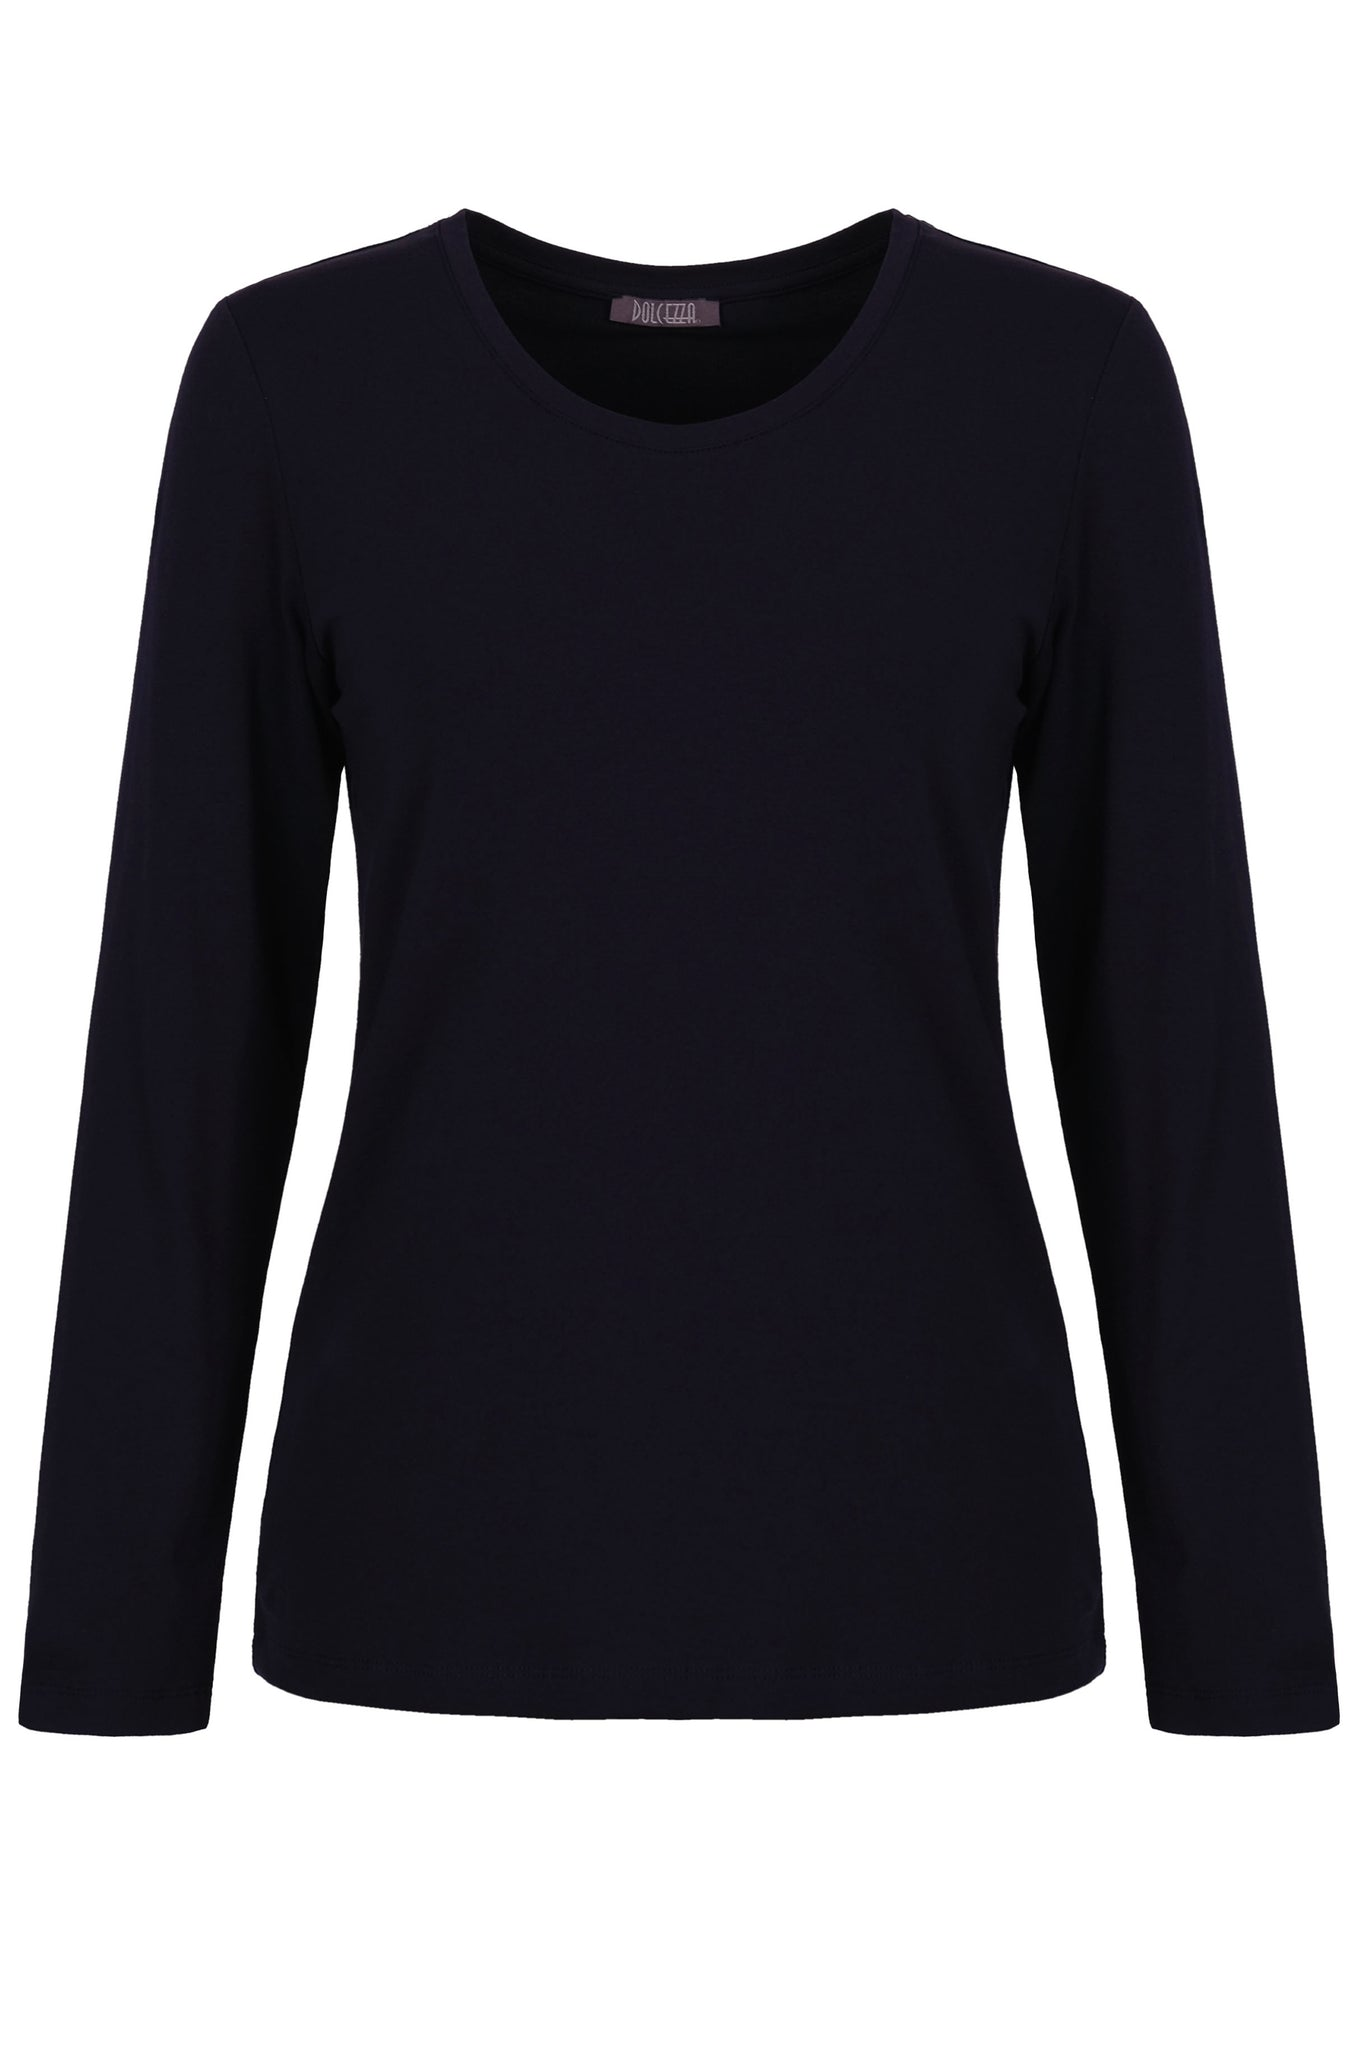 Dolcezza | Basic Long Sleeve Top